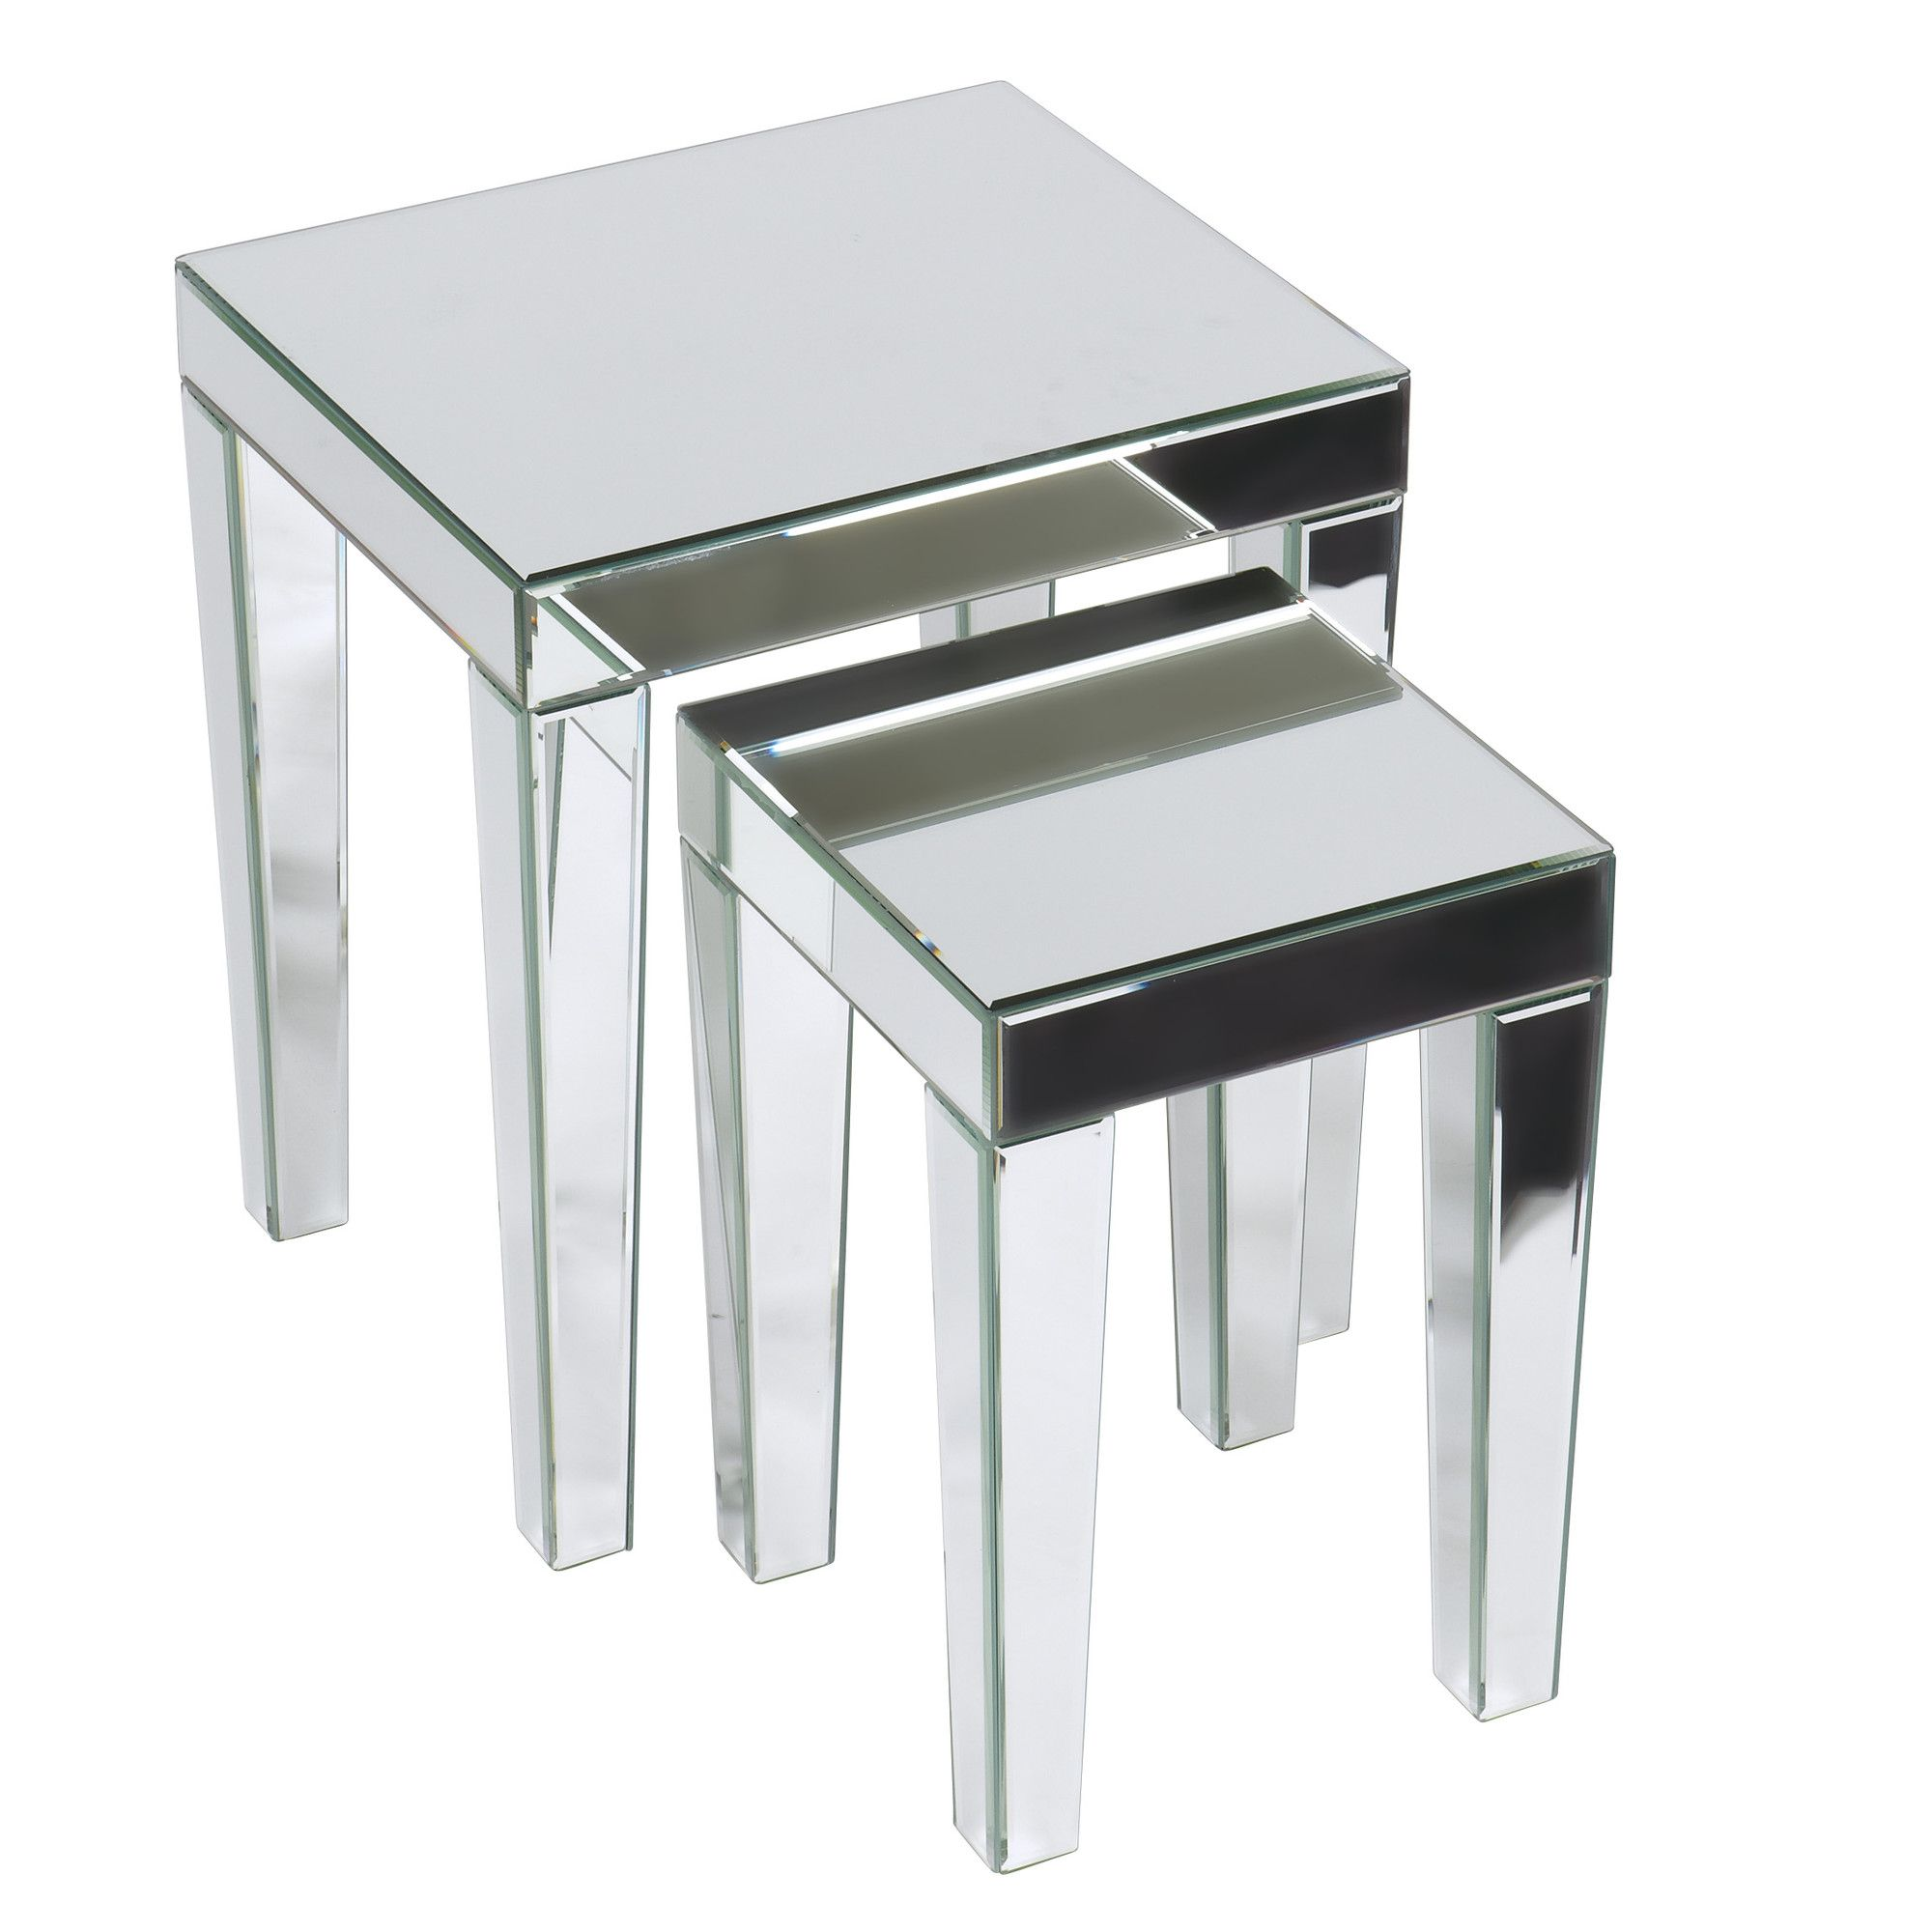 ave six reflections collection silver mirrored nesting tables set small accent table includes large with slide out drawer decorative crystal handle model farmhouse style kitchen